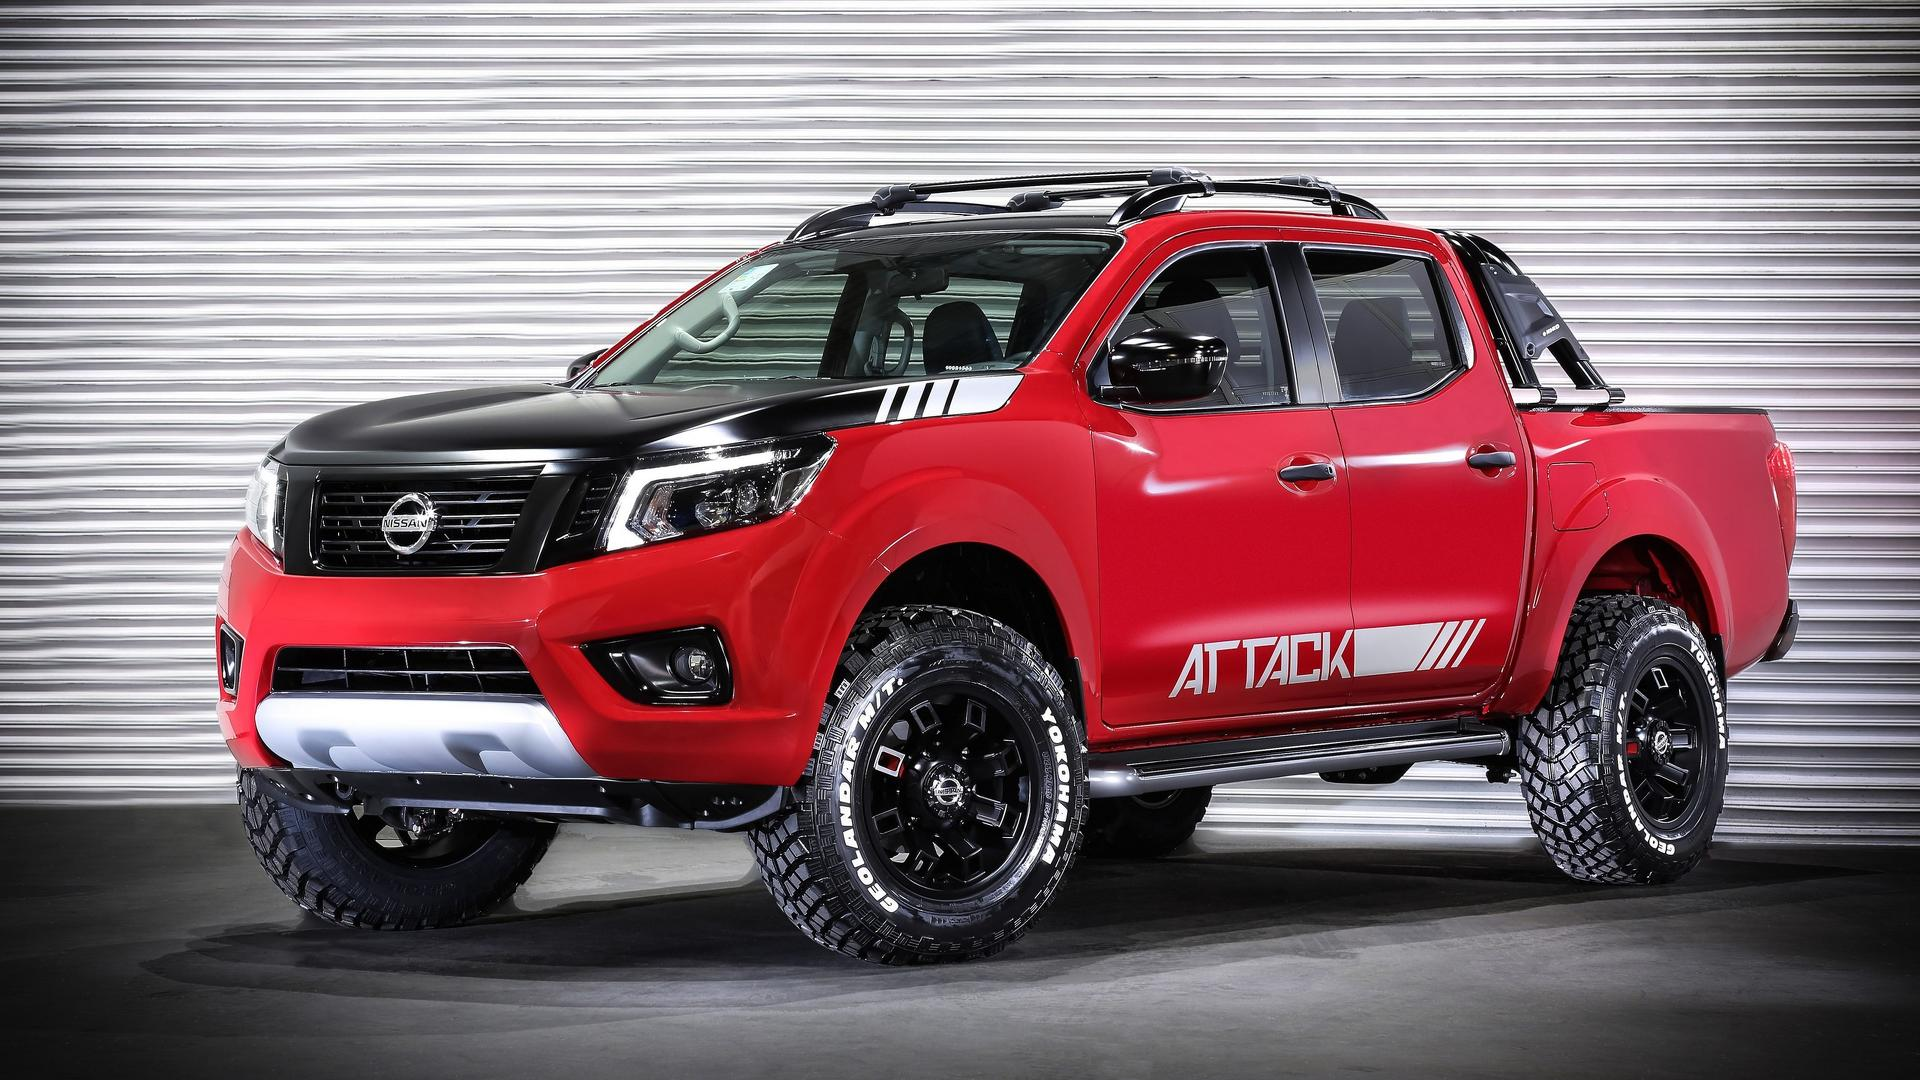 Nissan Frontier Gets The Attack Concept Treatment In Latin ...